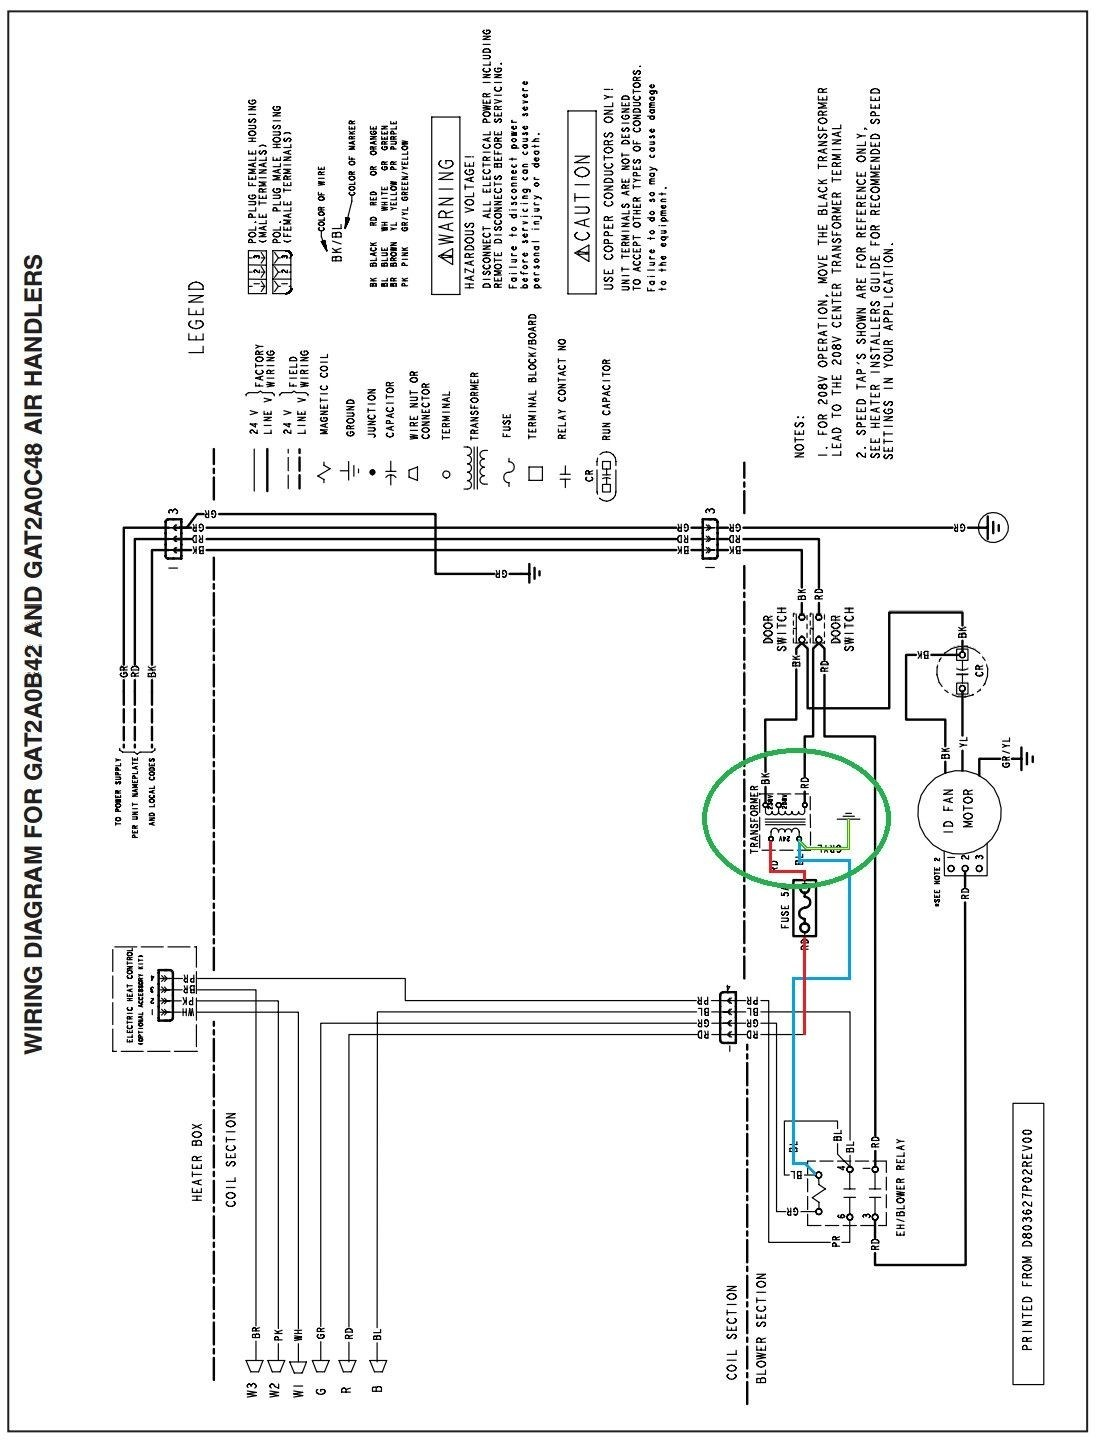 Trane Xe90 Wiring Diagram For Your Needs